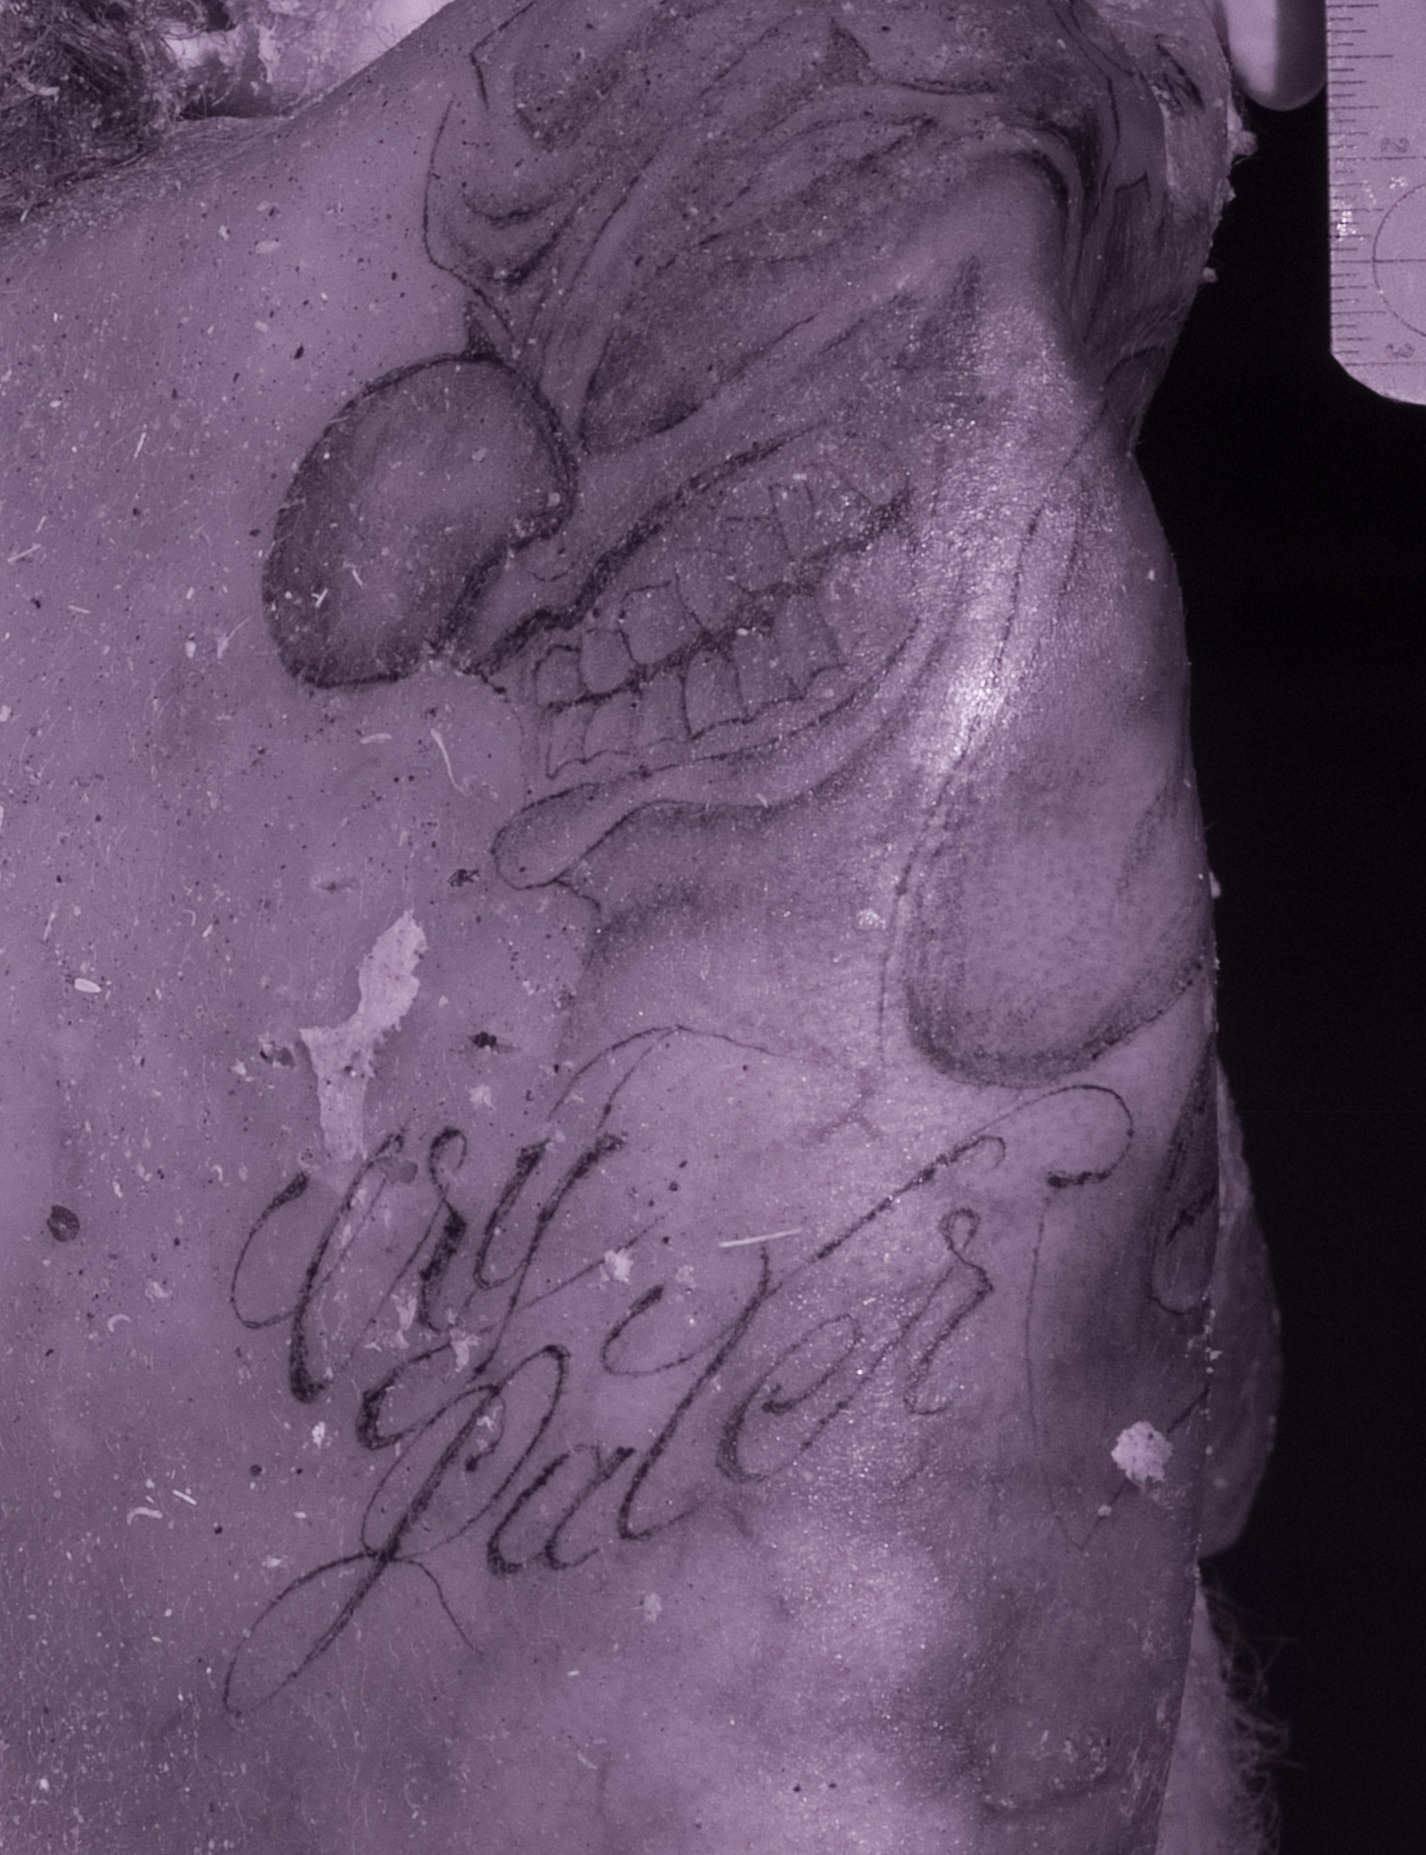 Mystery Death in Desert: Do You Recognize These Tattoos